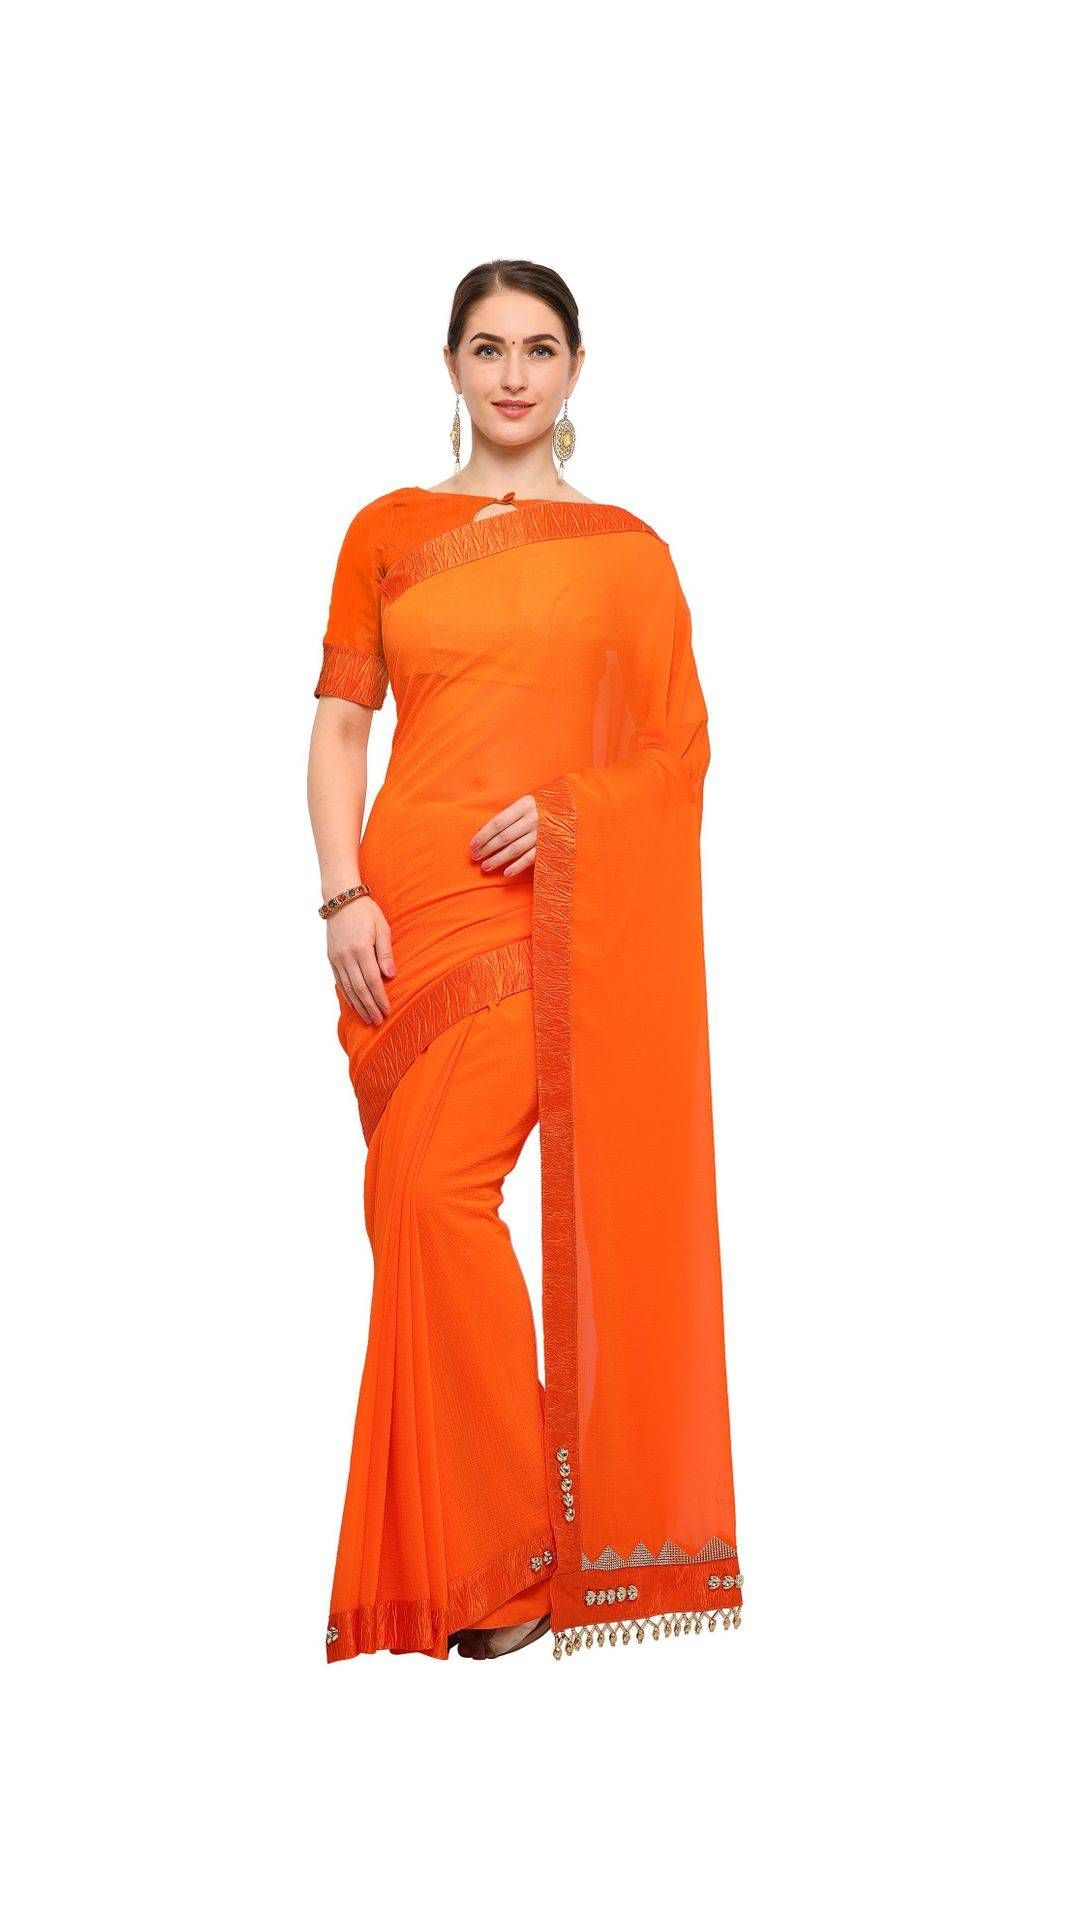 c40e0a05a Paytmmall.com - Buy Uniqkart Orange Color Embellished Plain Saree online at  best prices in India on Paytmmall.com